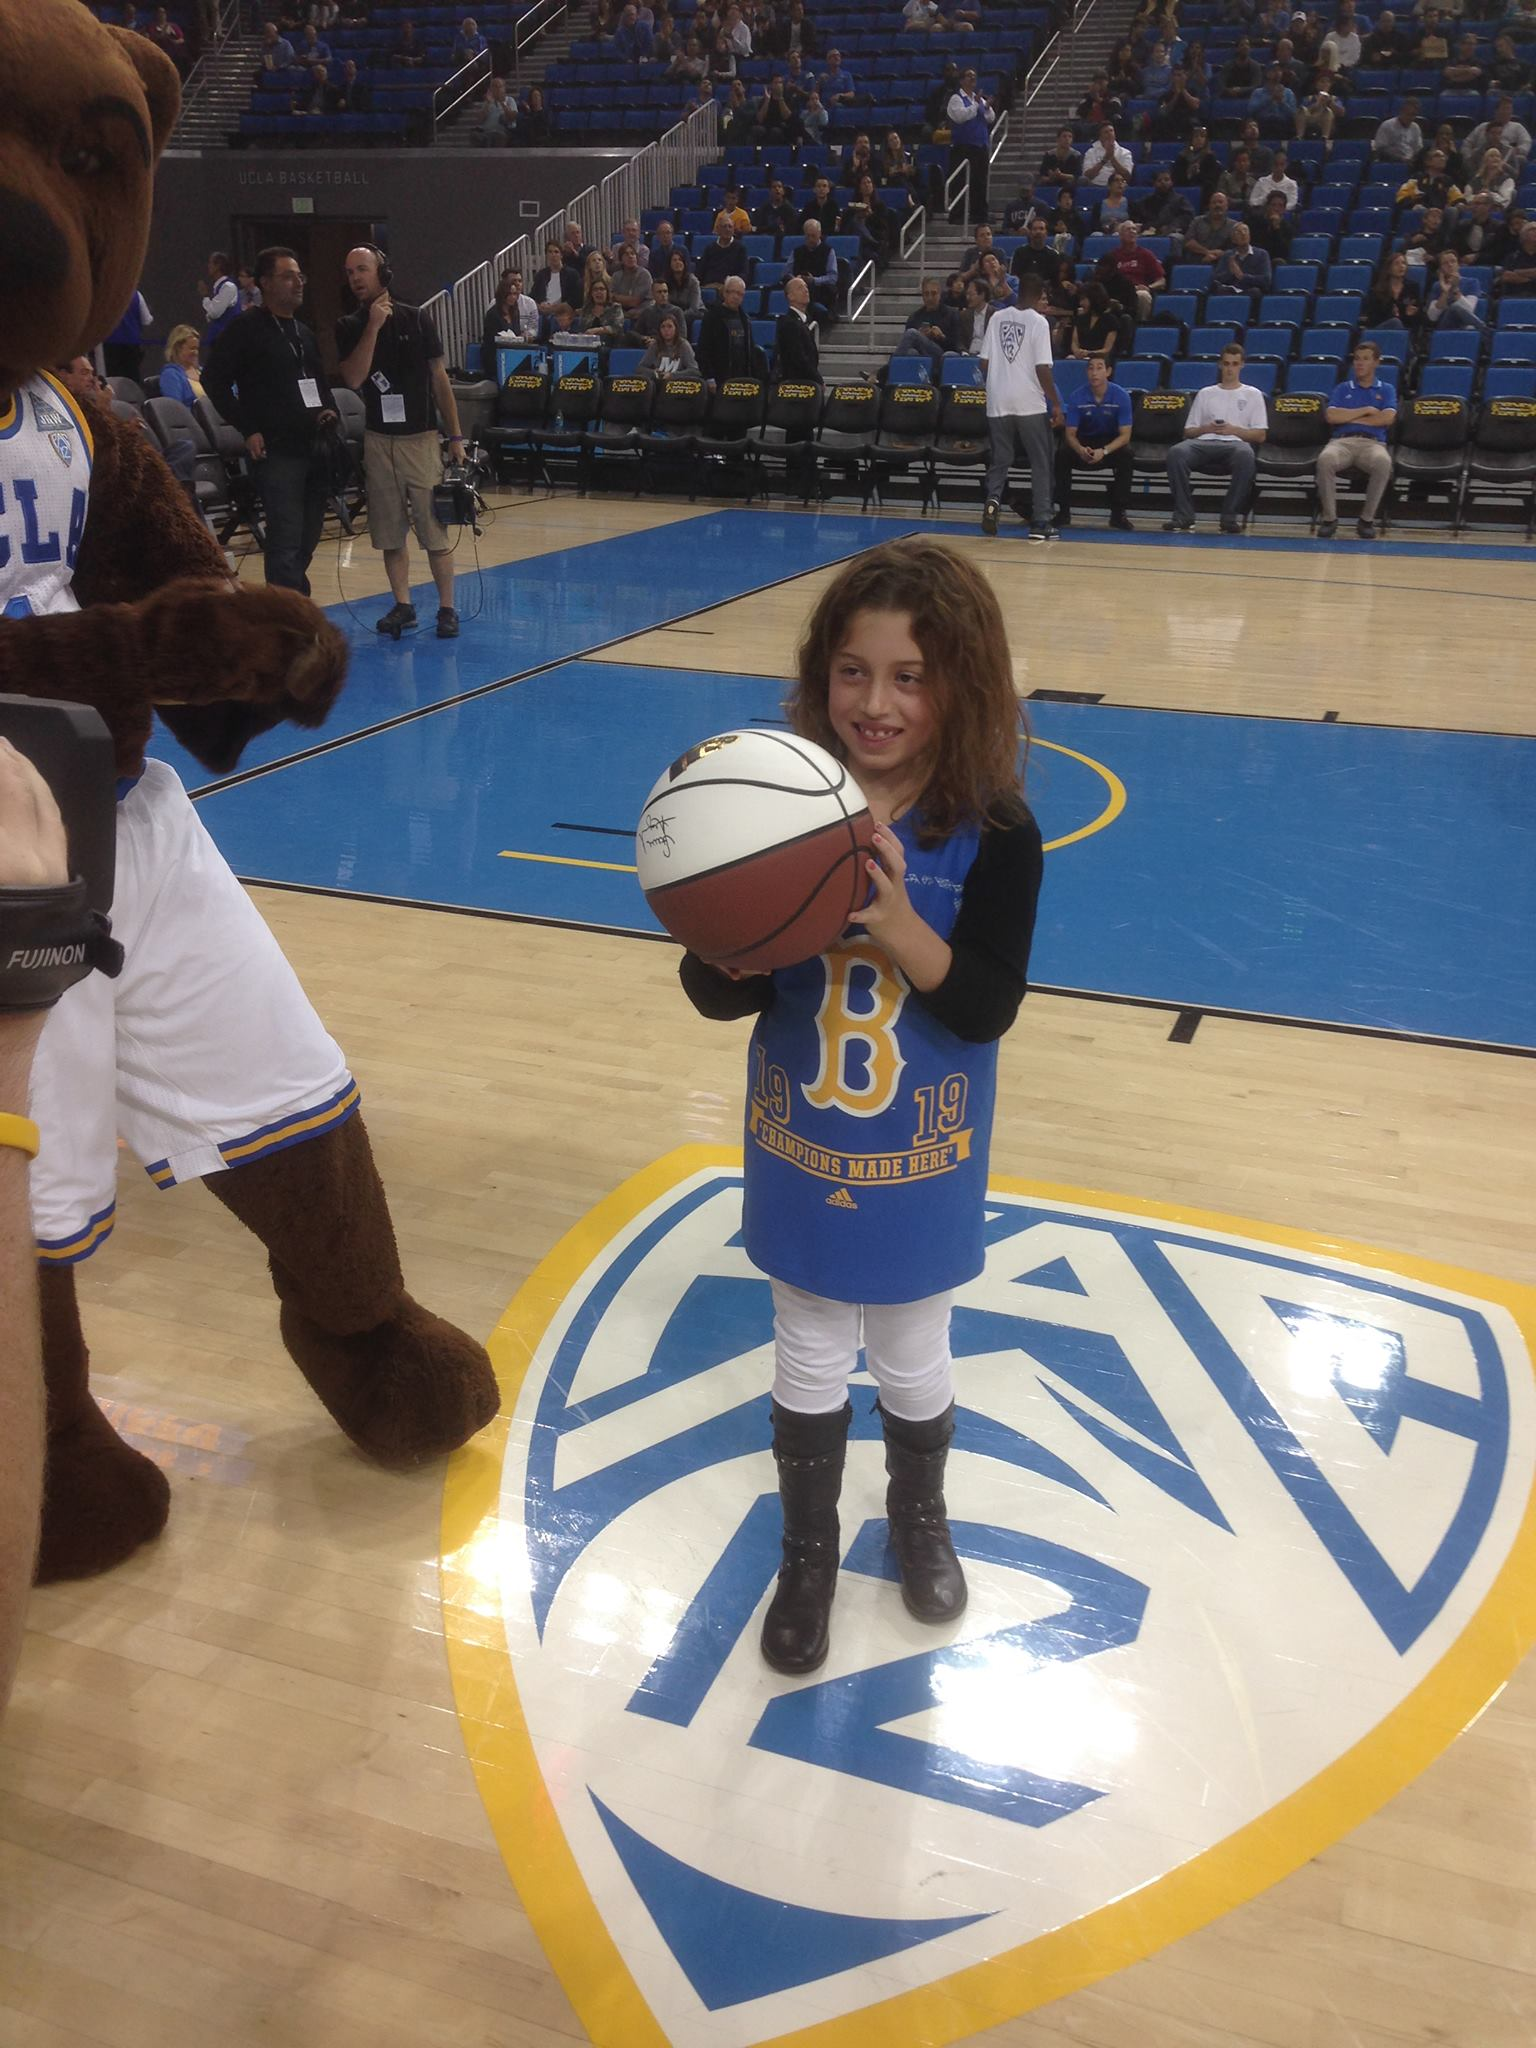 Blayke receiving the game ball as Kid Captain!